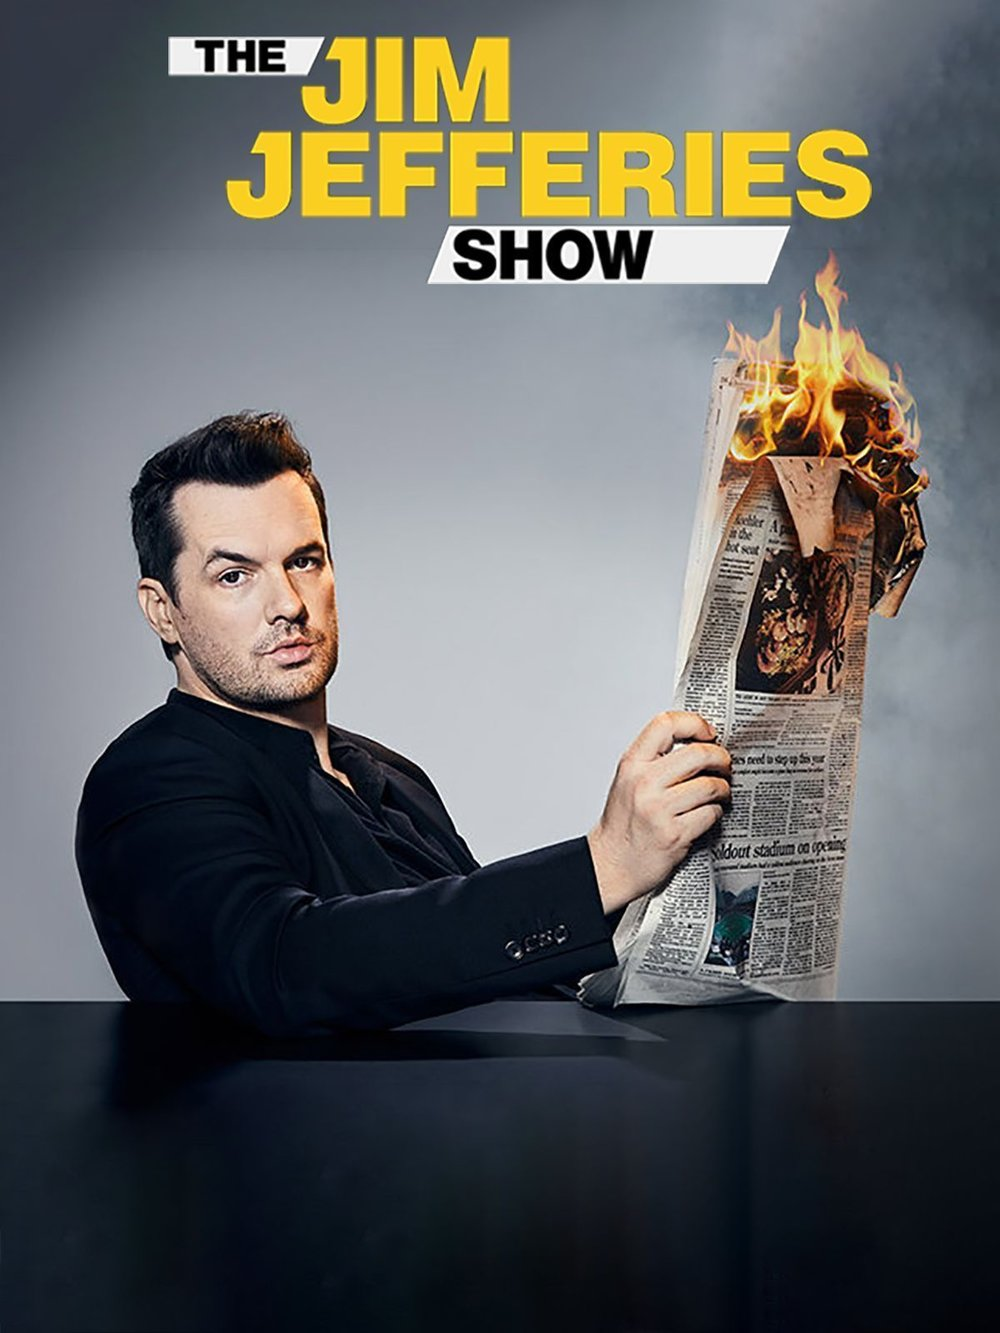 jimjefferies.jpg